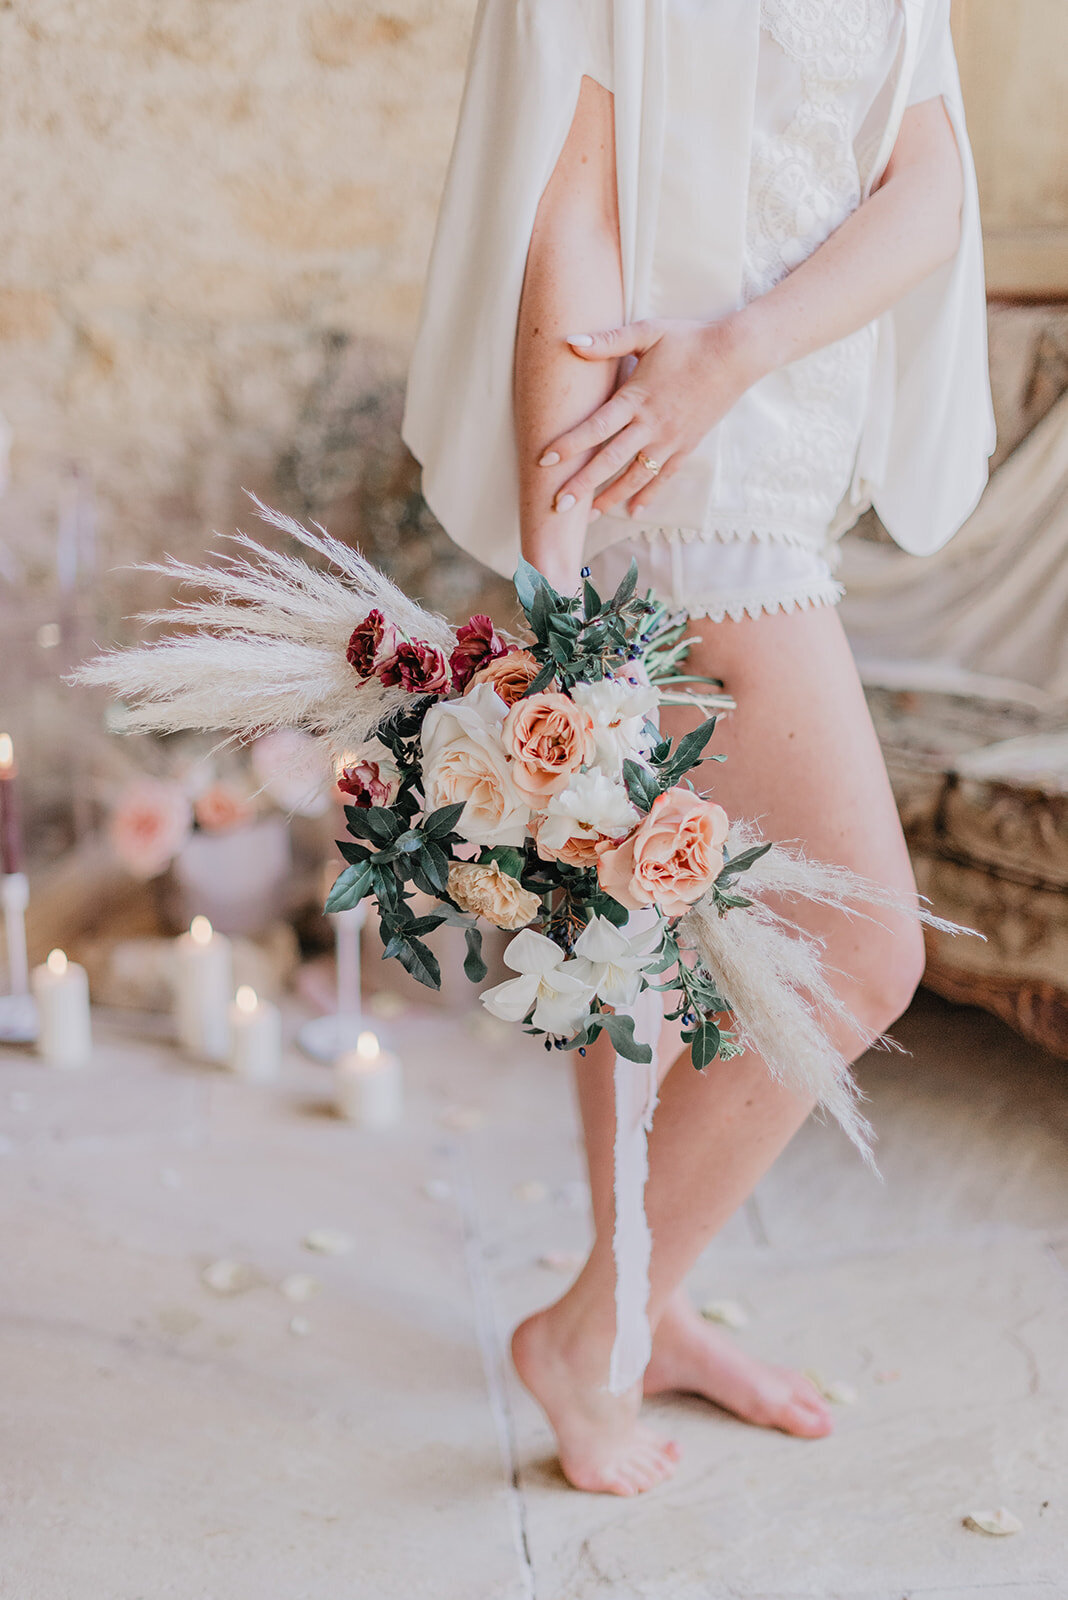 MorganeBallPhotography-Inspimariage-Chateau-ThonneLesPres-LovelyInstants-Boudoir-0763_websize